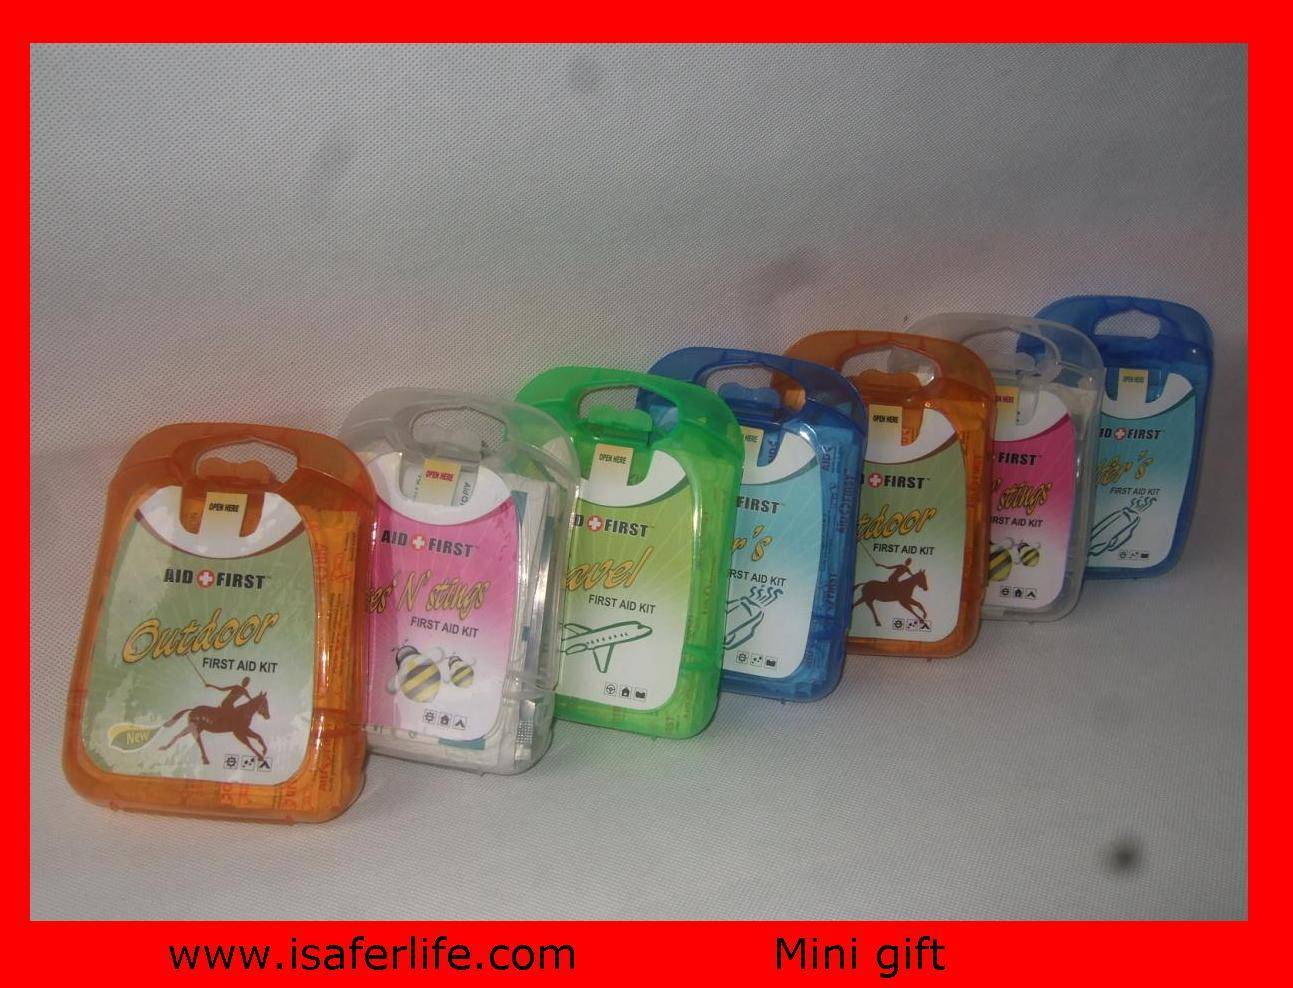 2011 NEW under USD1 PROMOTIONAL GIFT Medical premium FA201 First Aid Kit